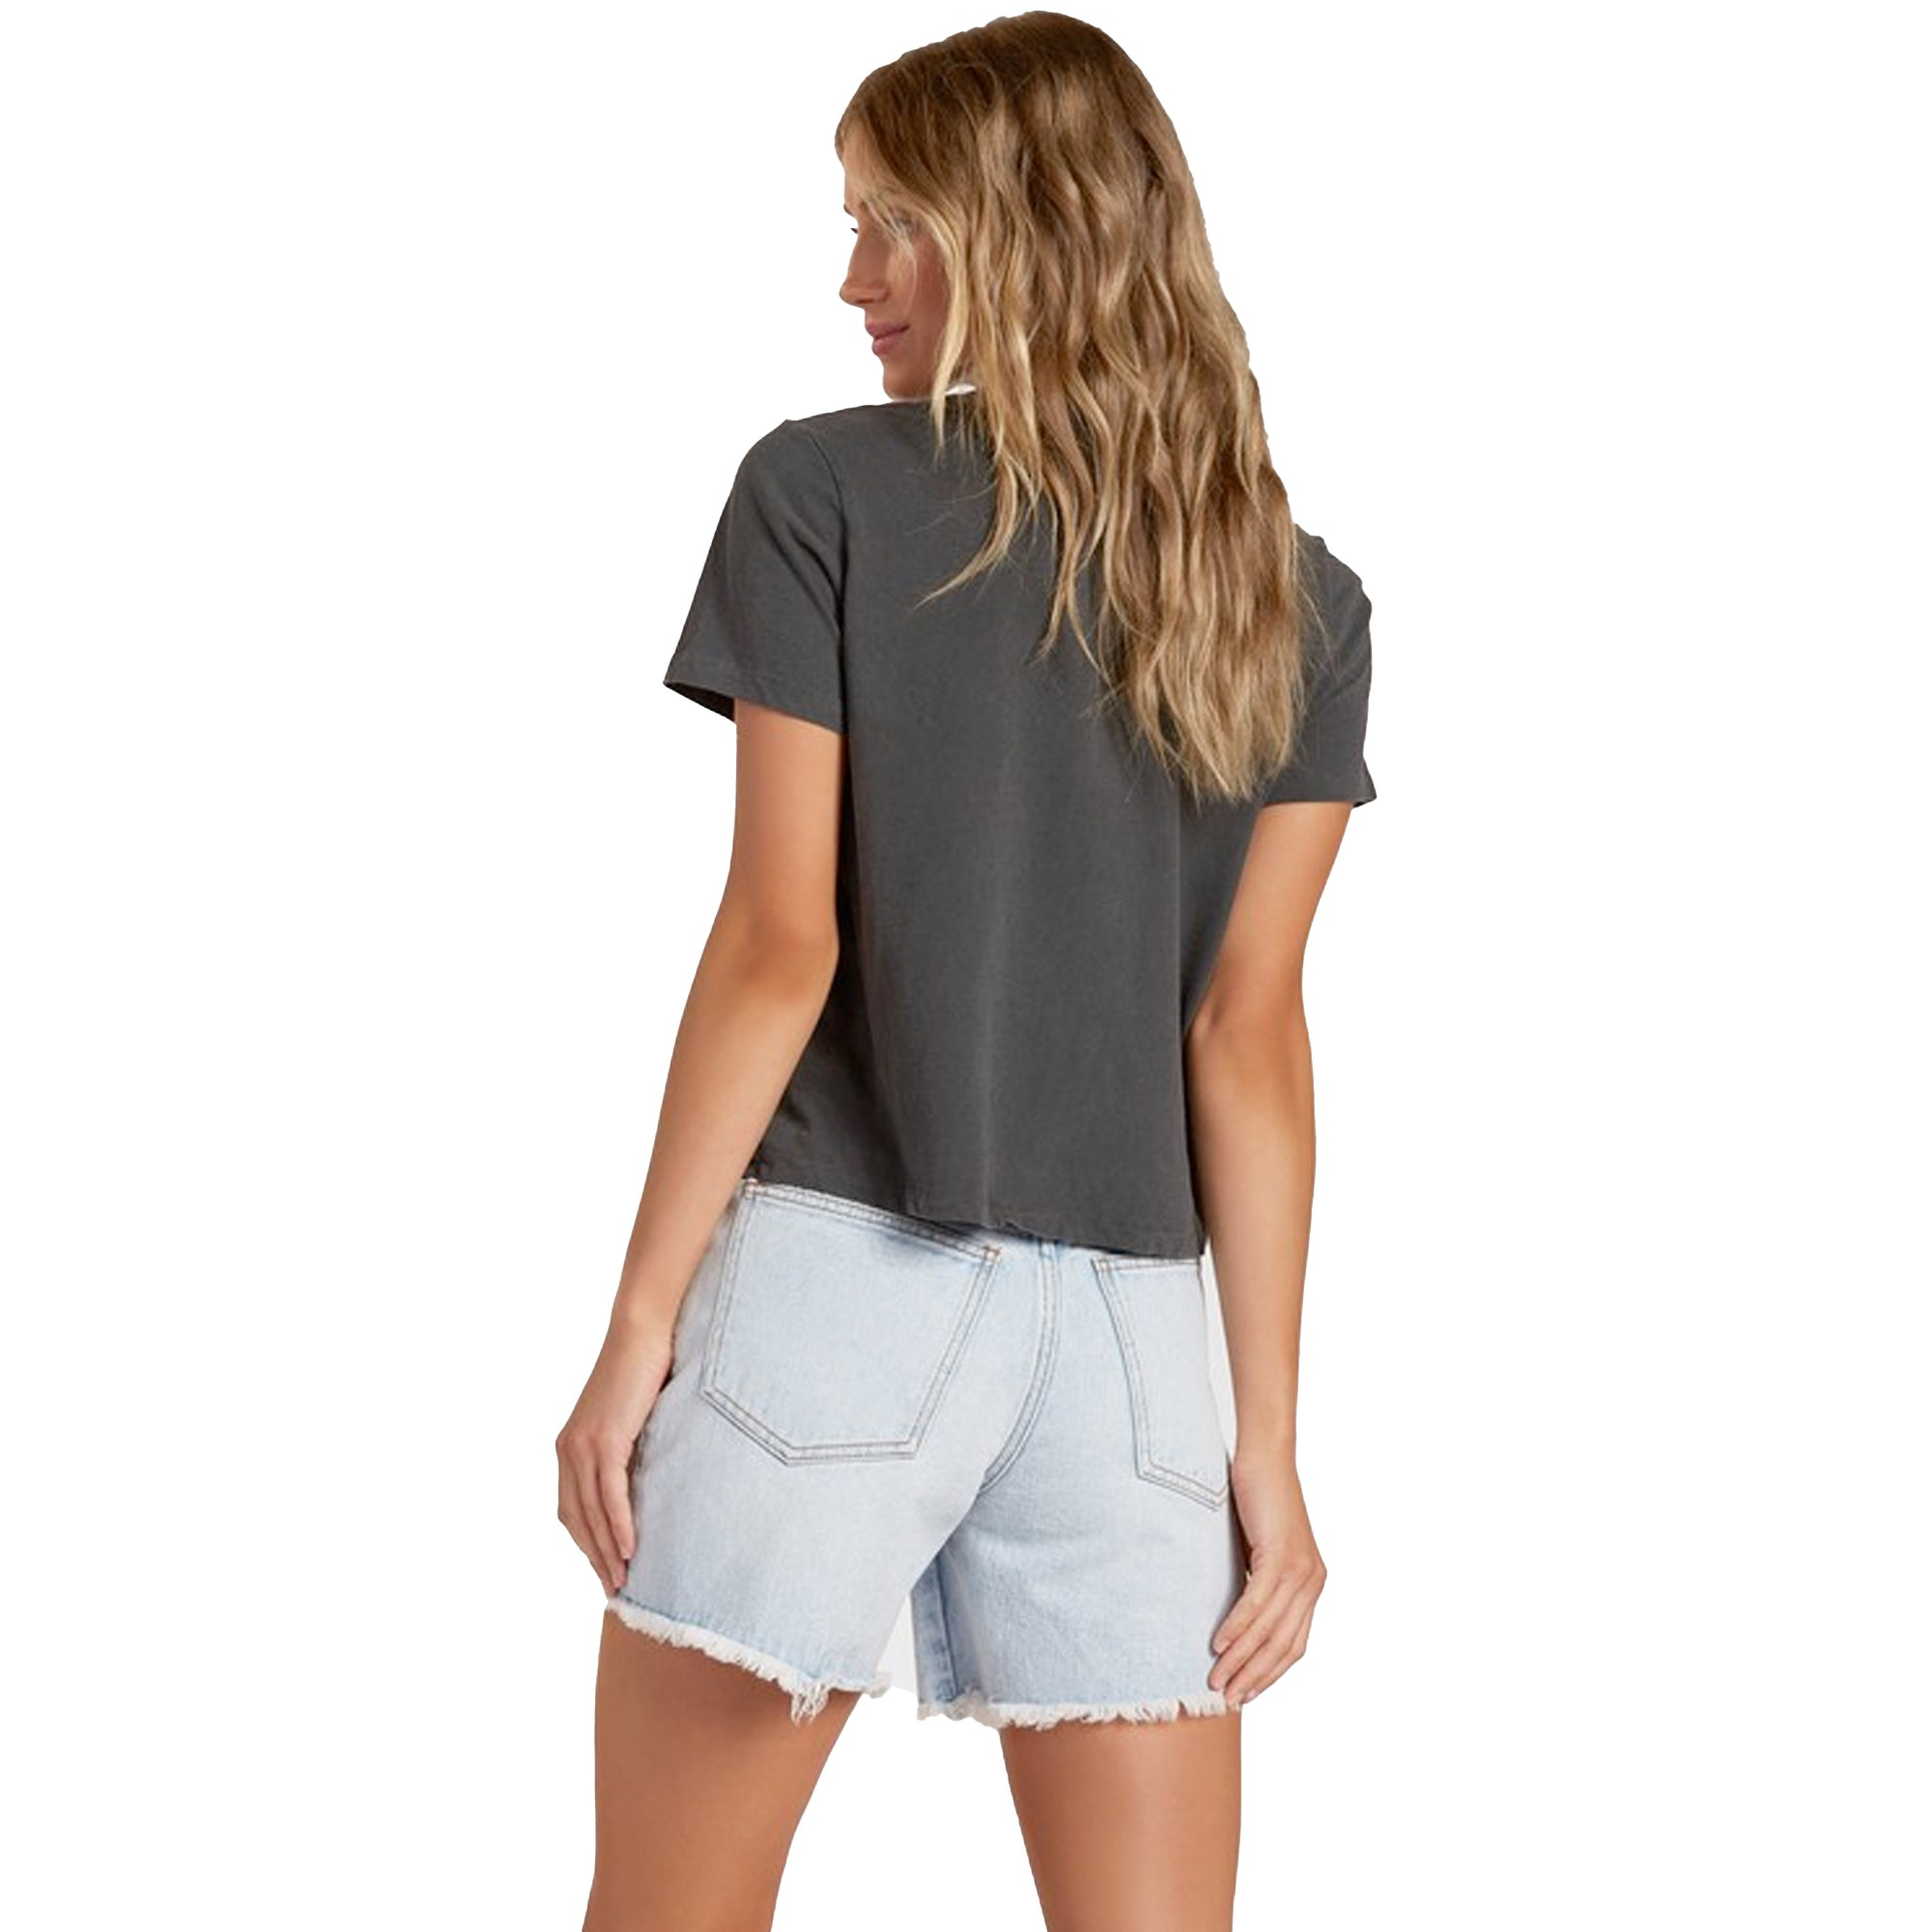 Billabong Under the Sun Women's S/S T-Shirt